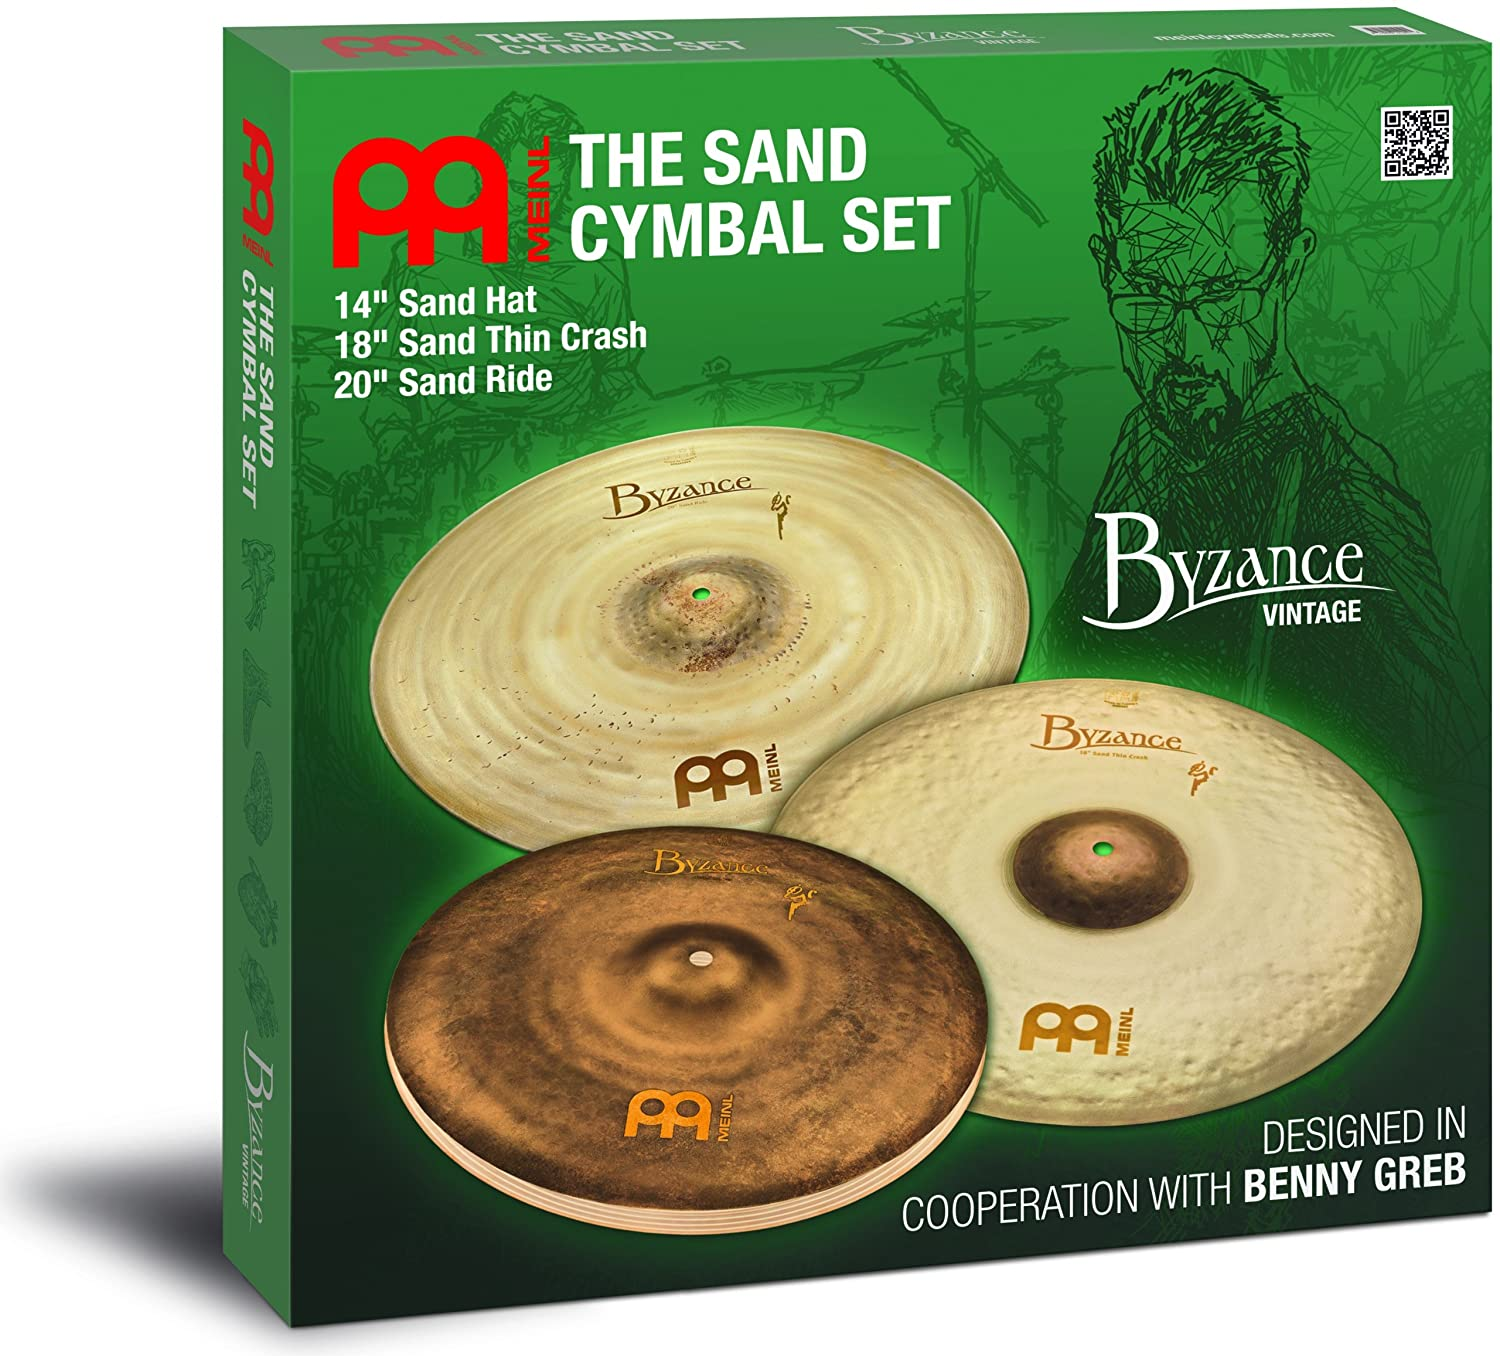 Meinl Cymbals BV-141820SA Meinl Signature Models Benny Greb Byzance Vintage Sand Becken Set (35,6 cm (14 Zoll) Hats, 45,7 cm (18 Zoll) Thin Crash, 50,8 cm (20 Zoll) Ride)